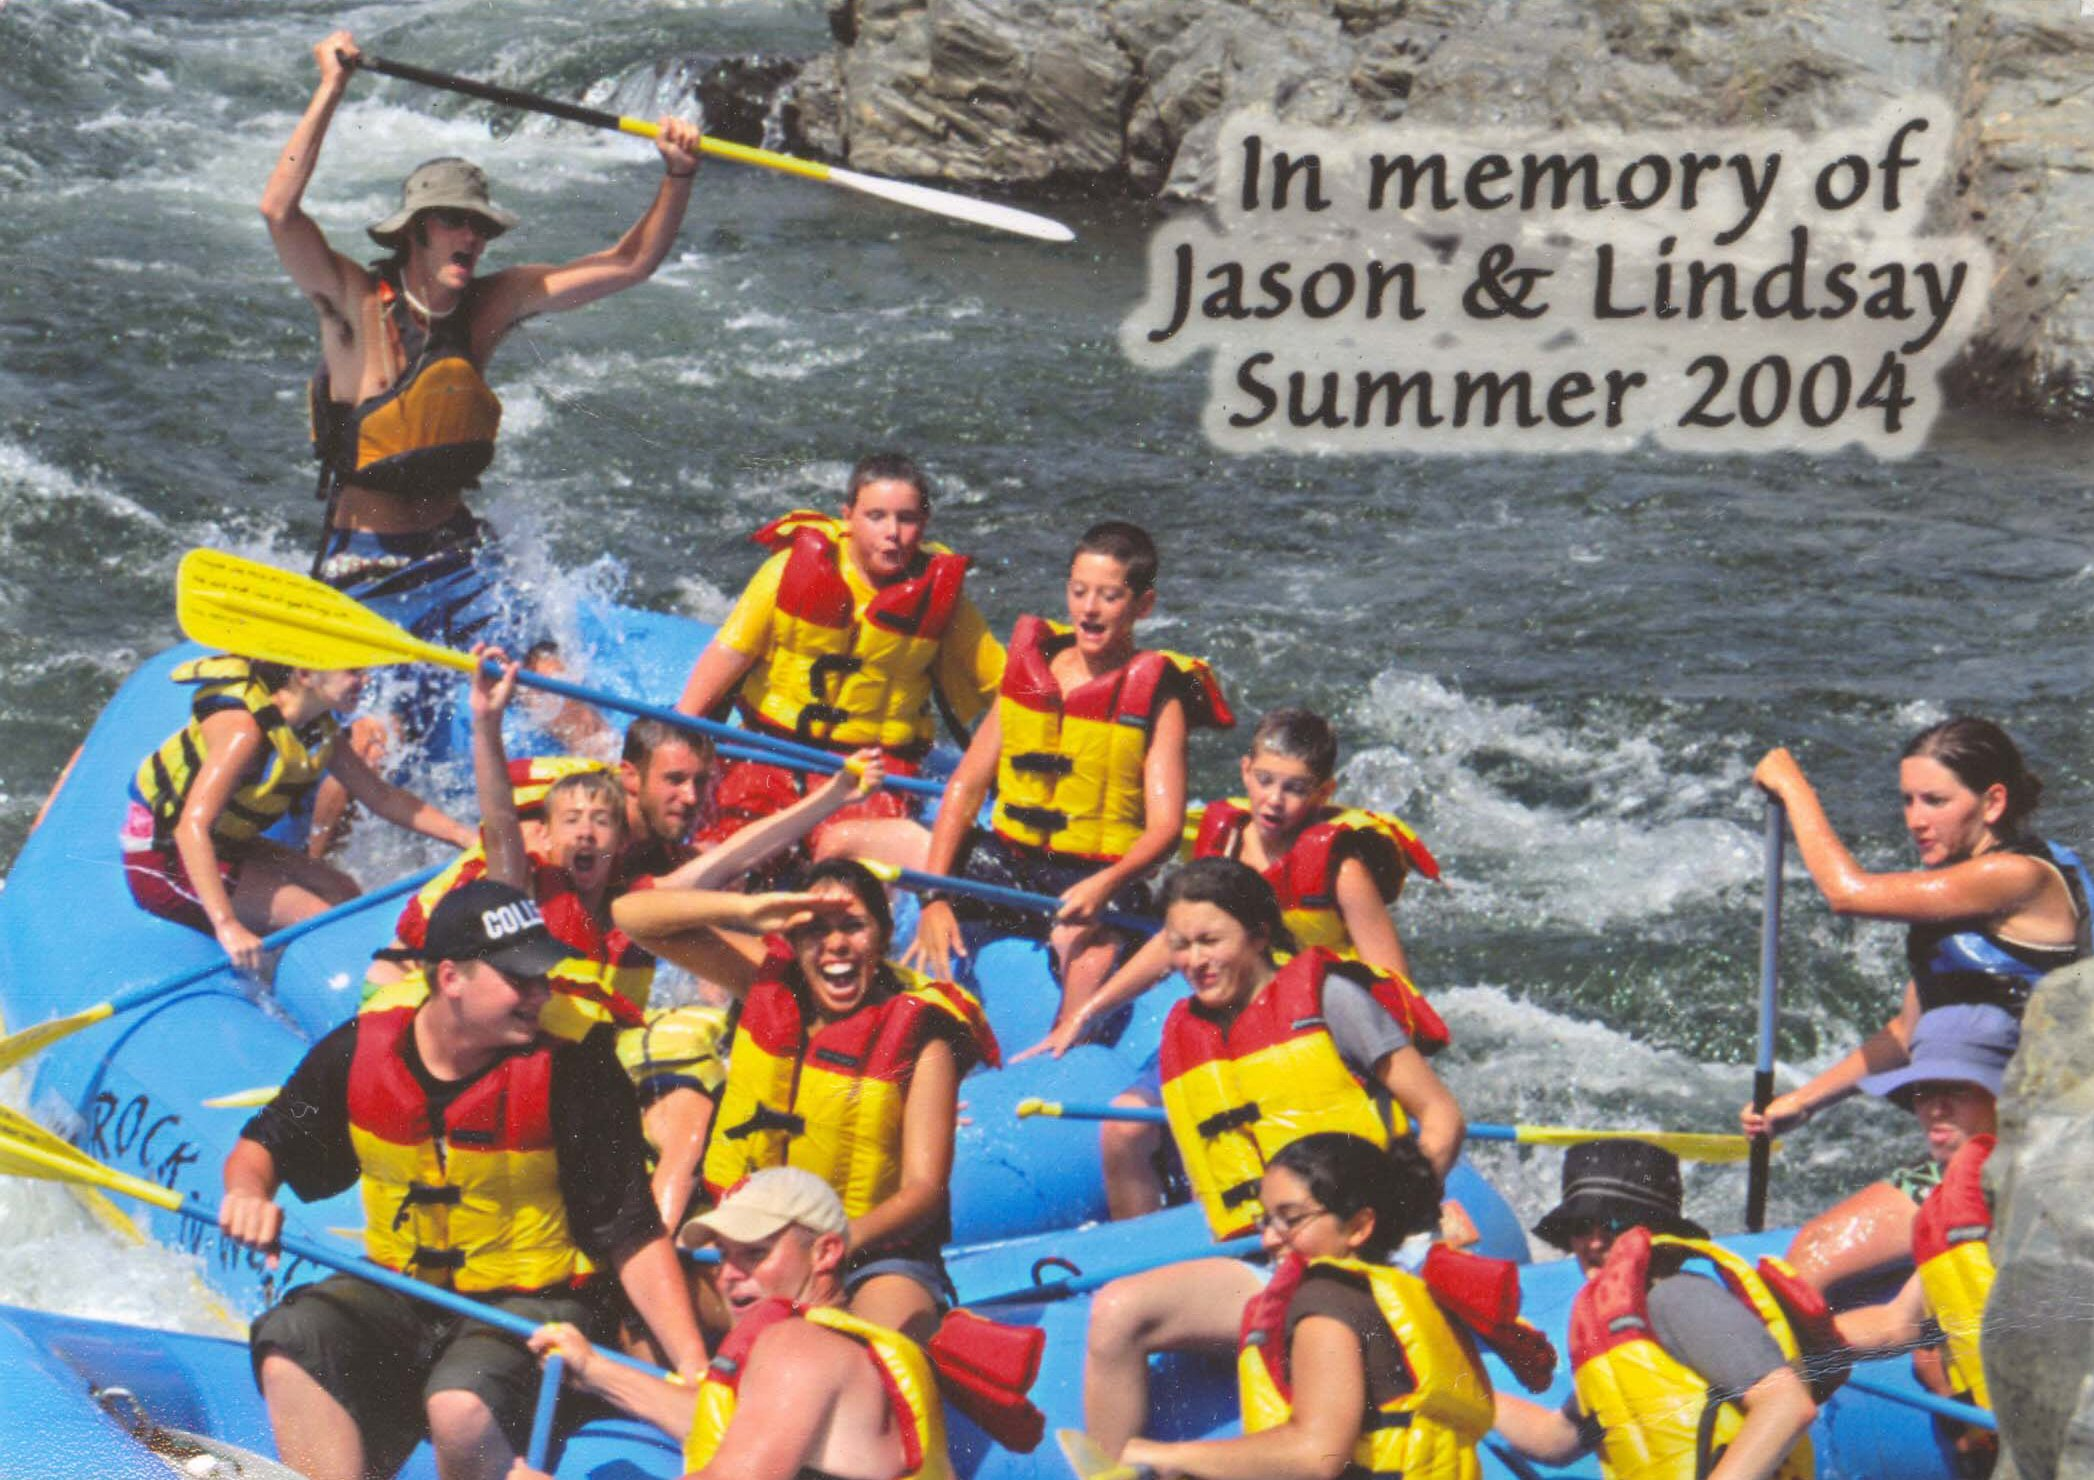 Tribute to Jason & Lindsay